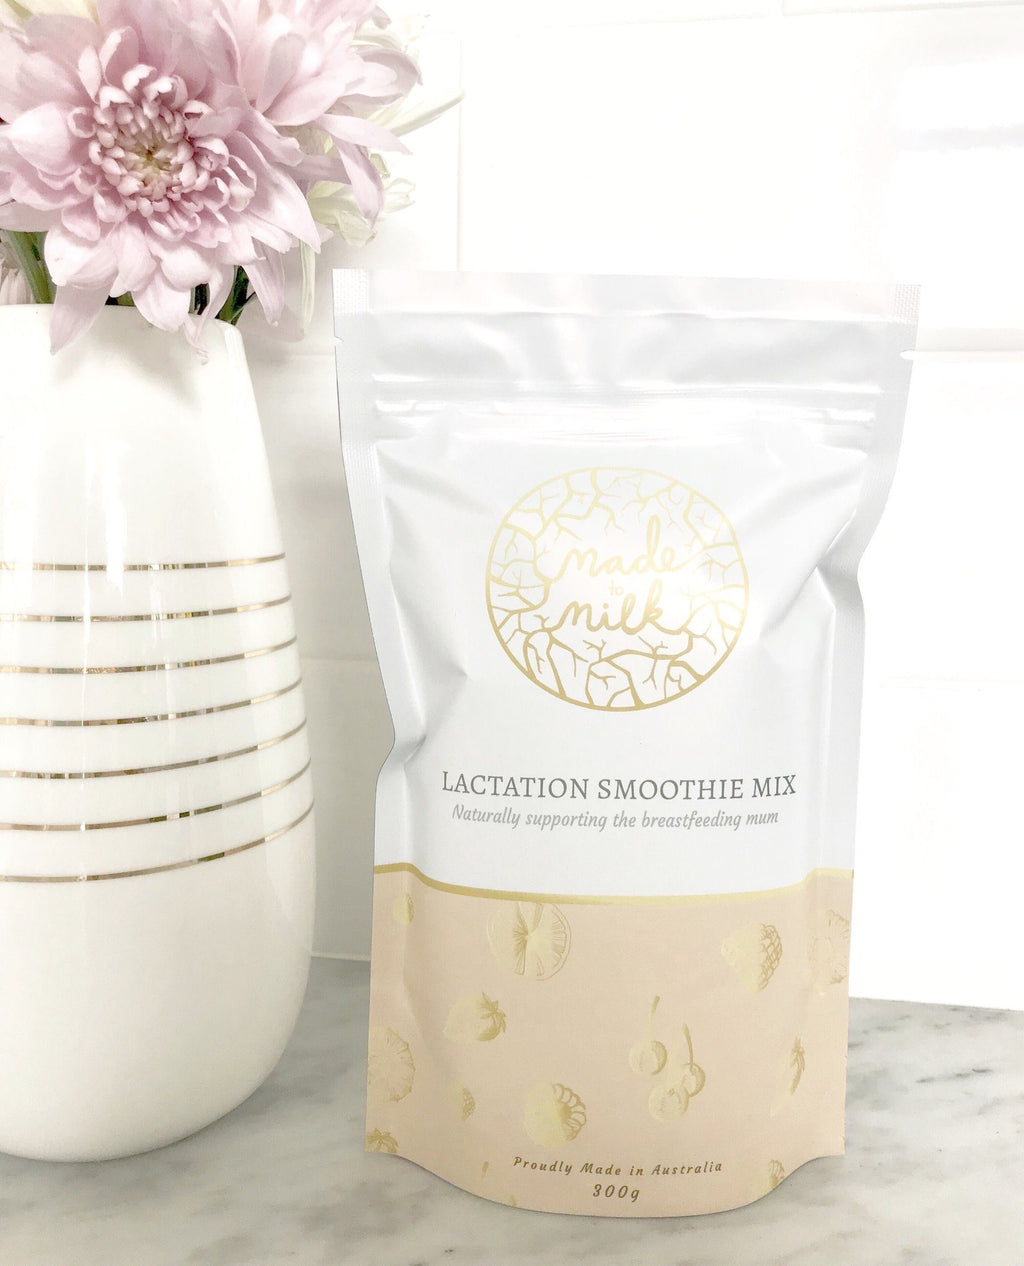 Lactation Smoothie Mix - Made to Milk - PRE-ORDER - Due mid June